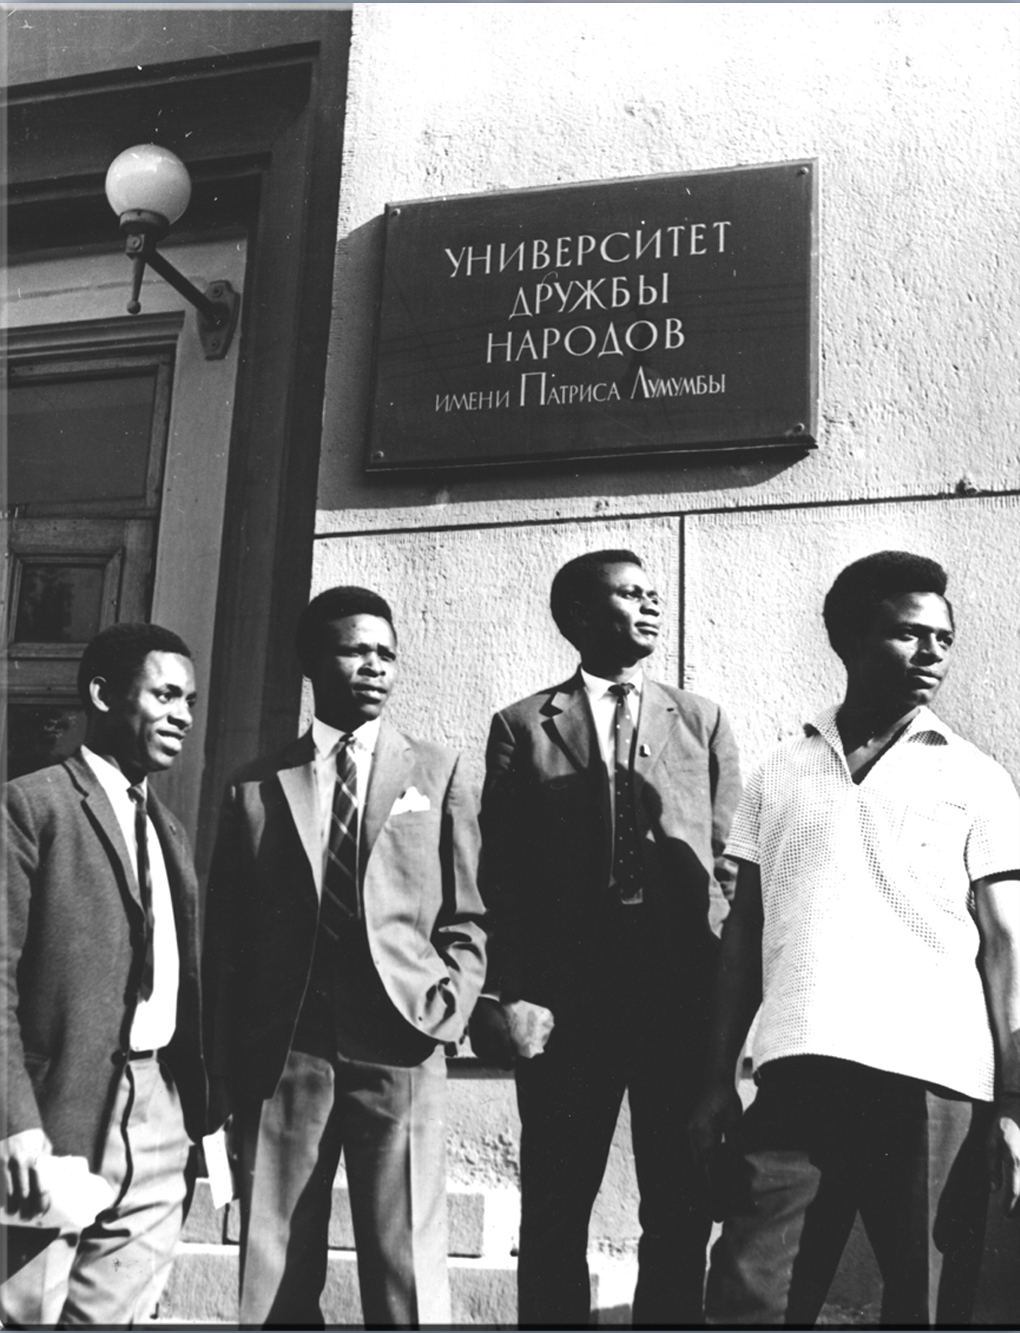 1.The Peoples' Friendship University was established on February 5, 1960. Until the early 1990s, it bore the name of the first Prime Minister of Congo, Patrice Lumumba.